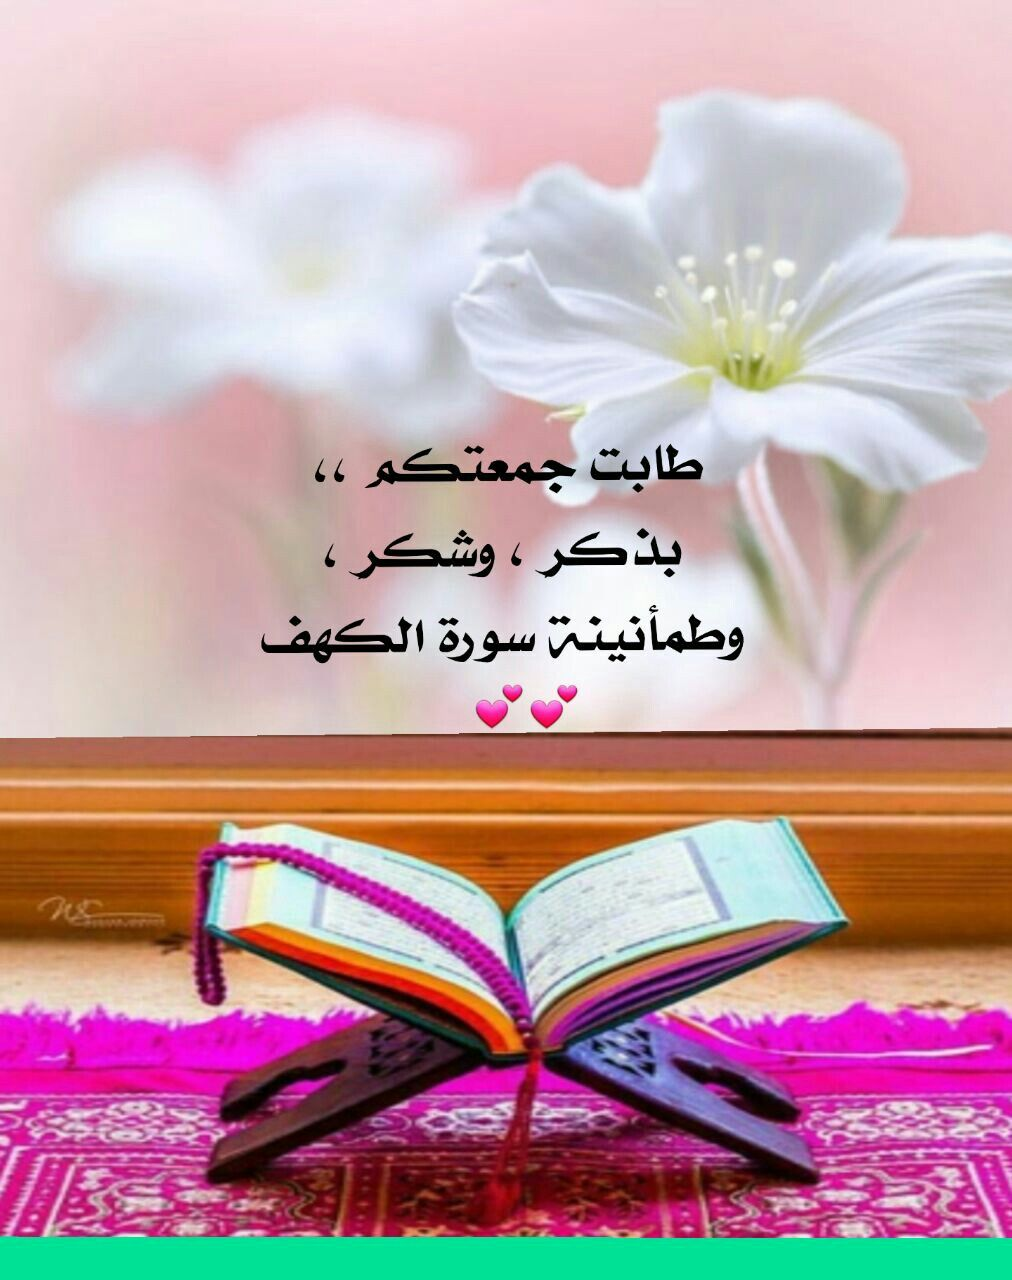 لا تنسوا قراءة سورة الكهف Jumma Mubarak Quotes Blessed Friday Islamic Pictures